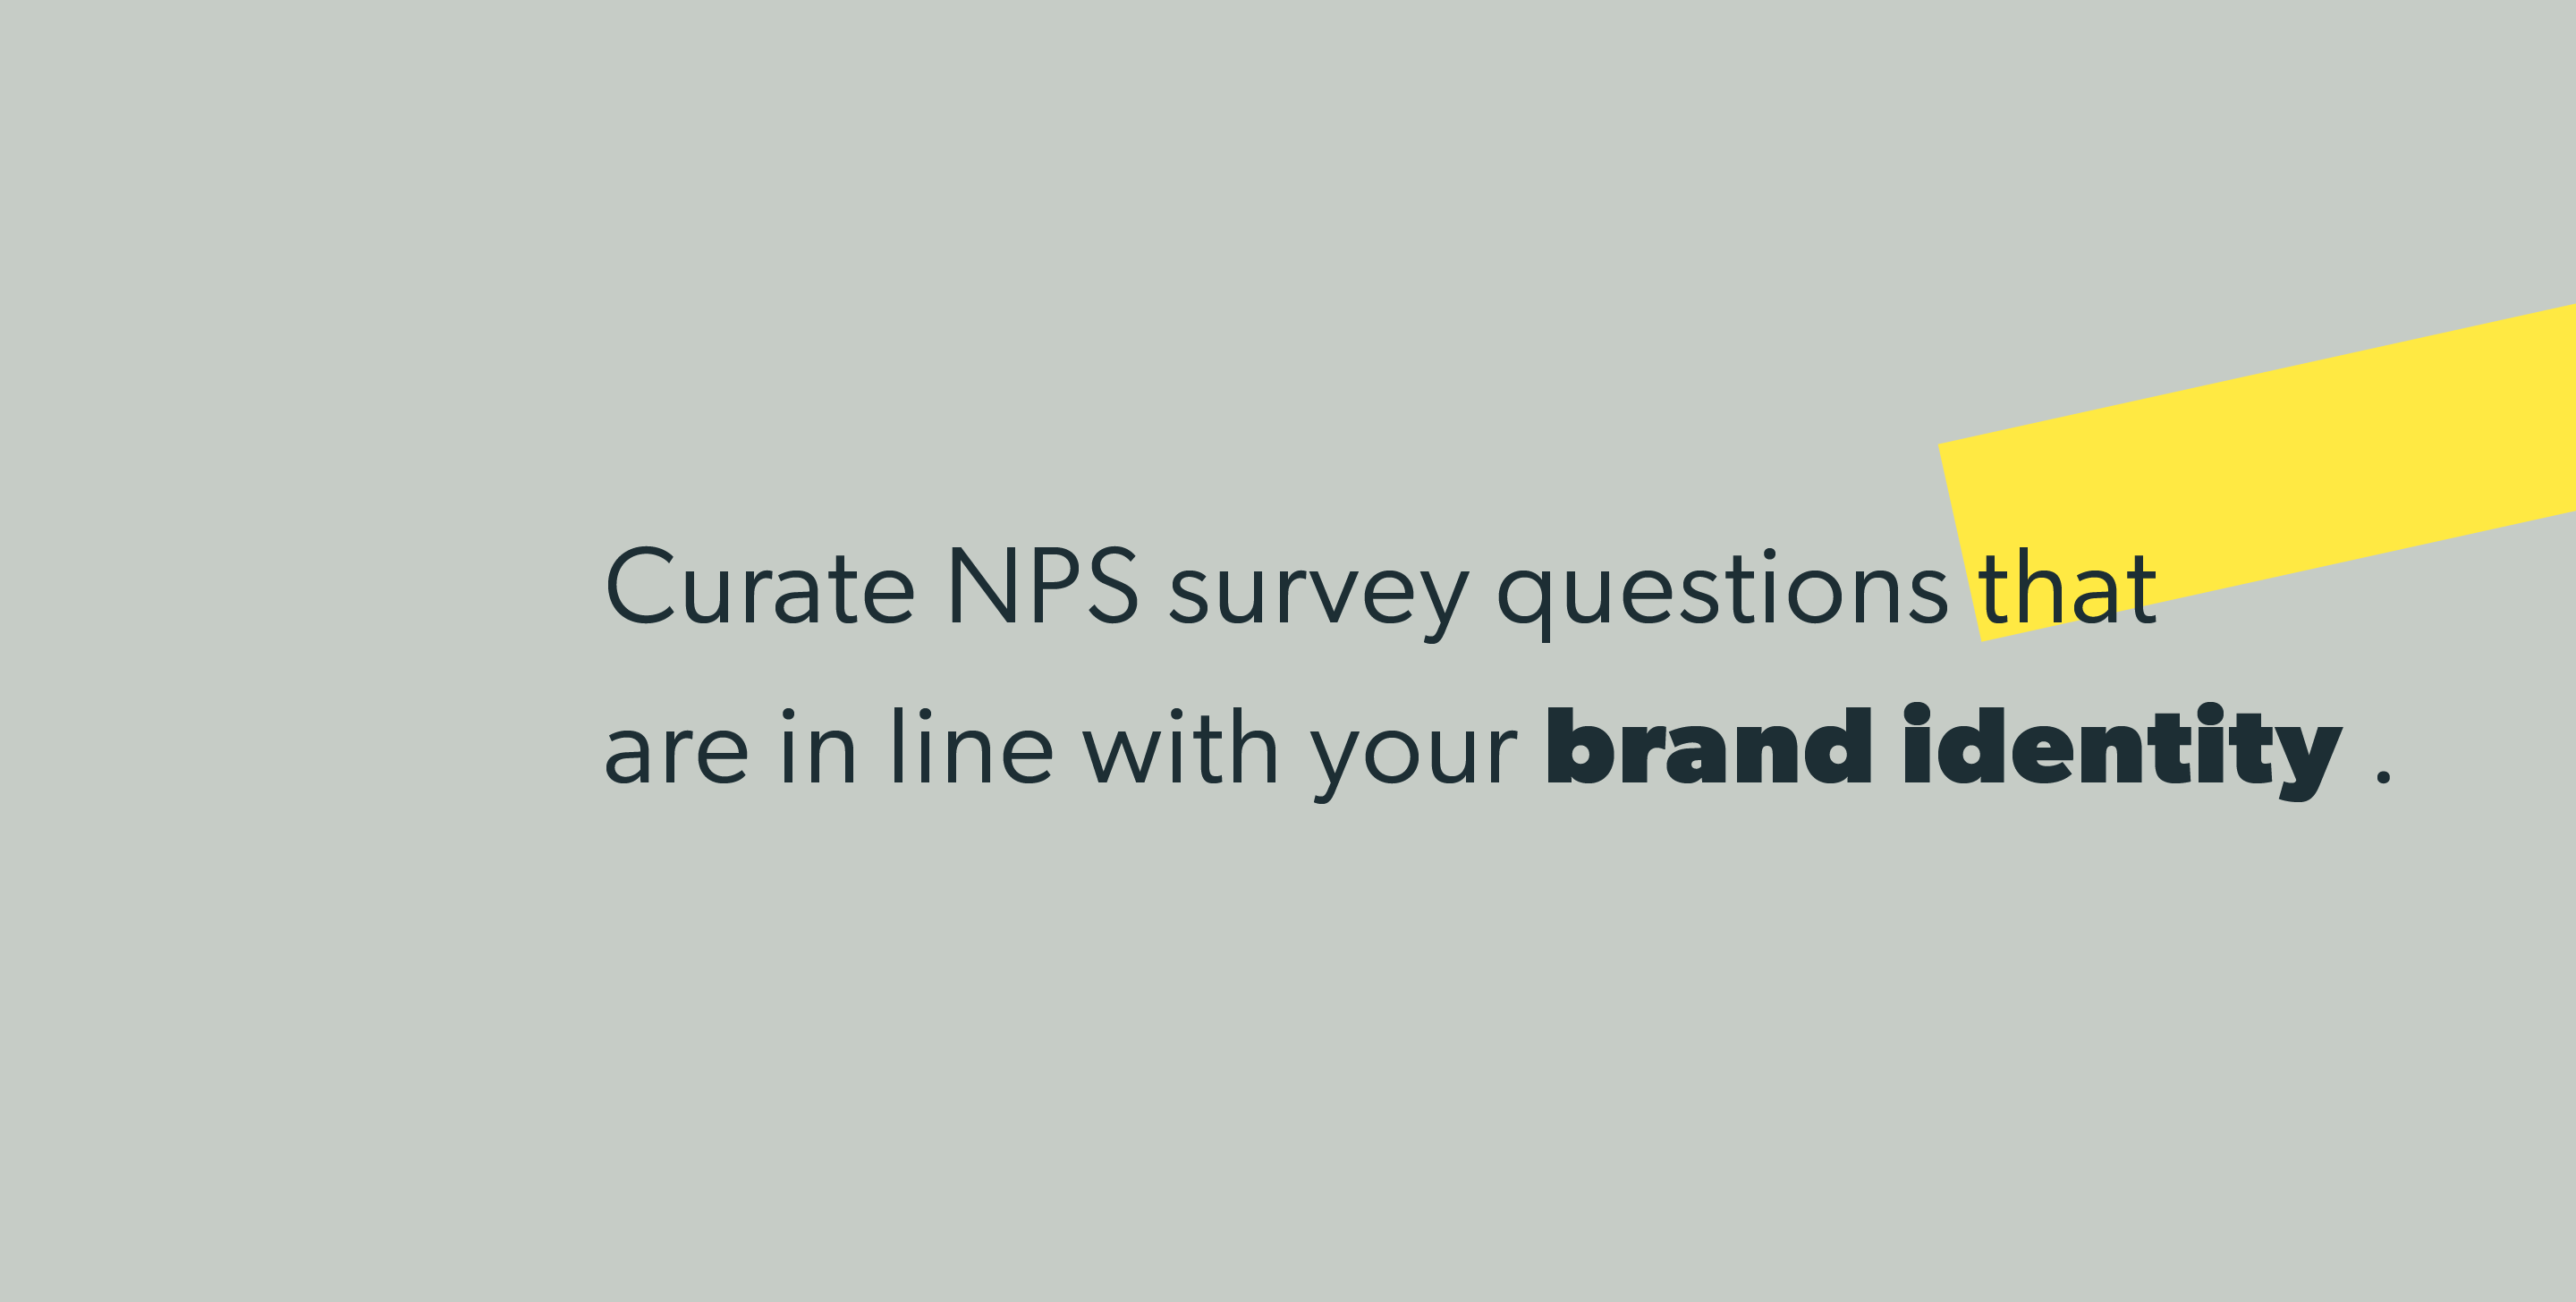 Curate NPS survey questions that are in line with your brand identity.